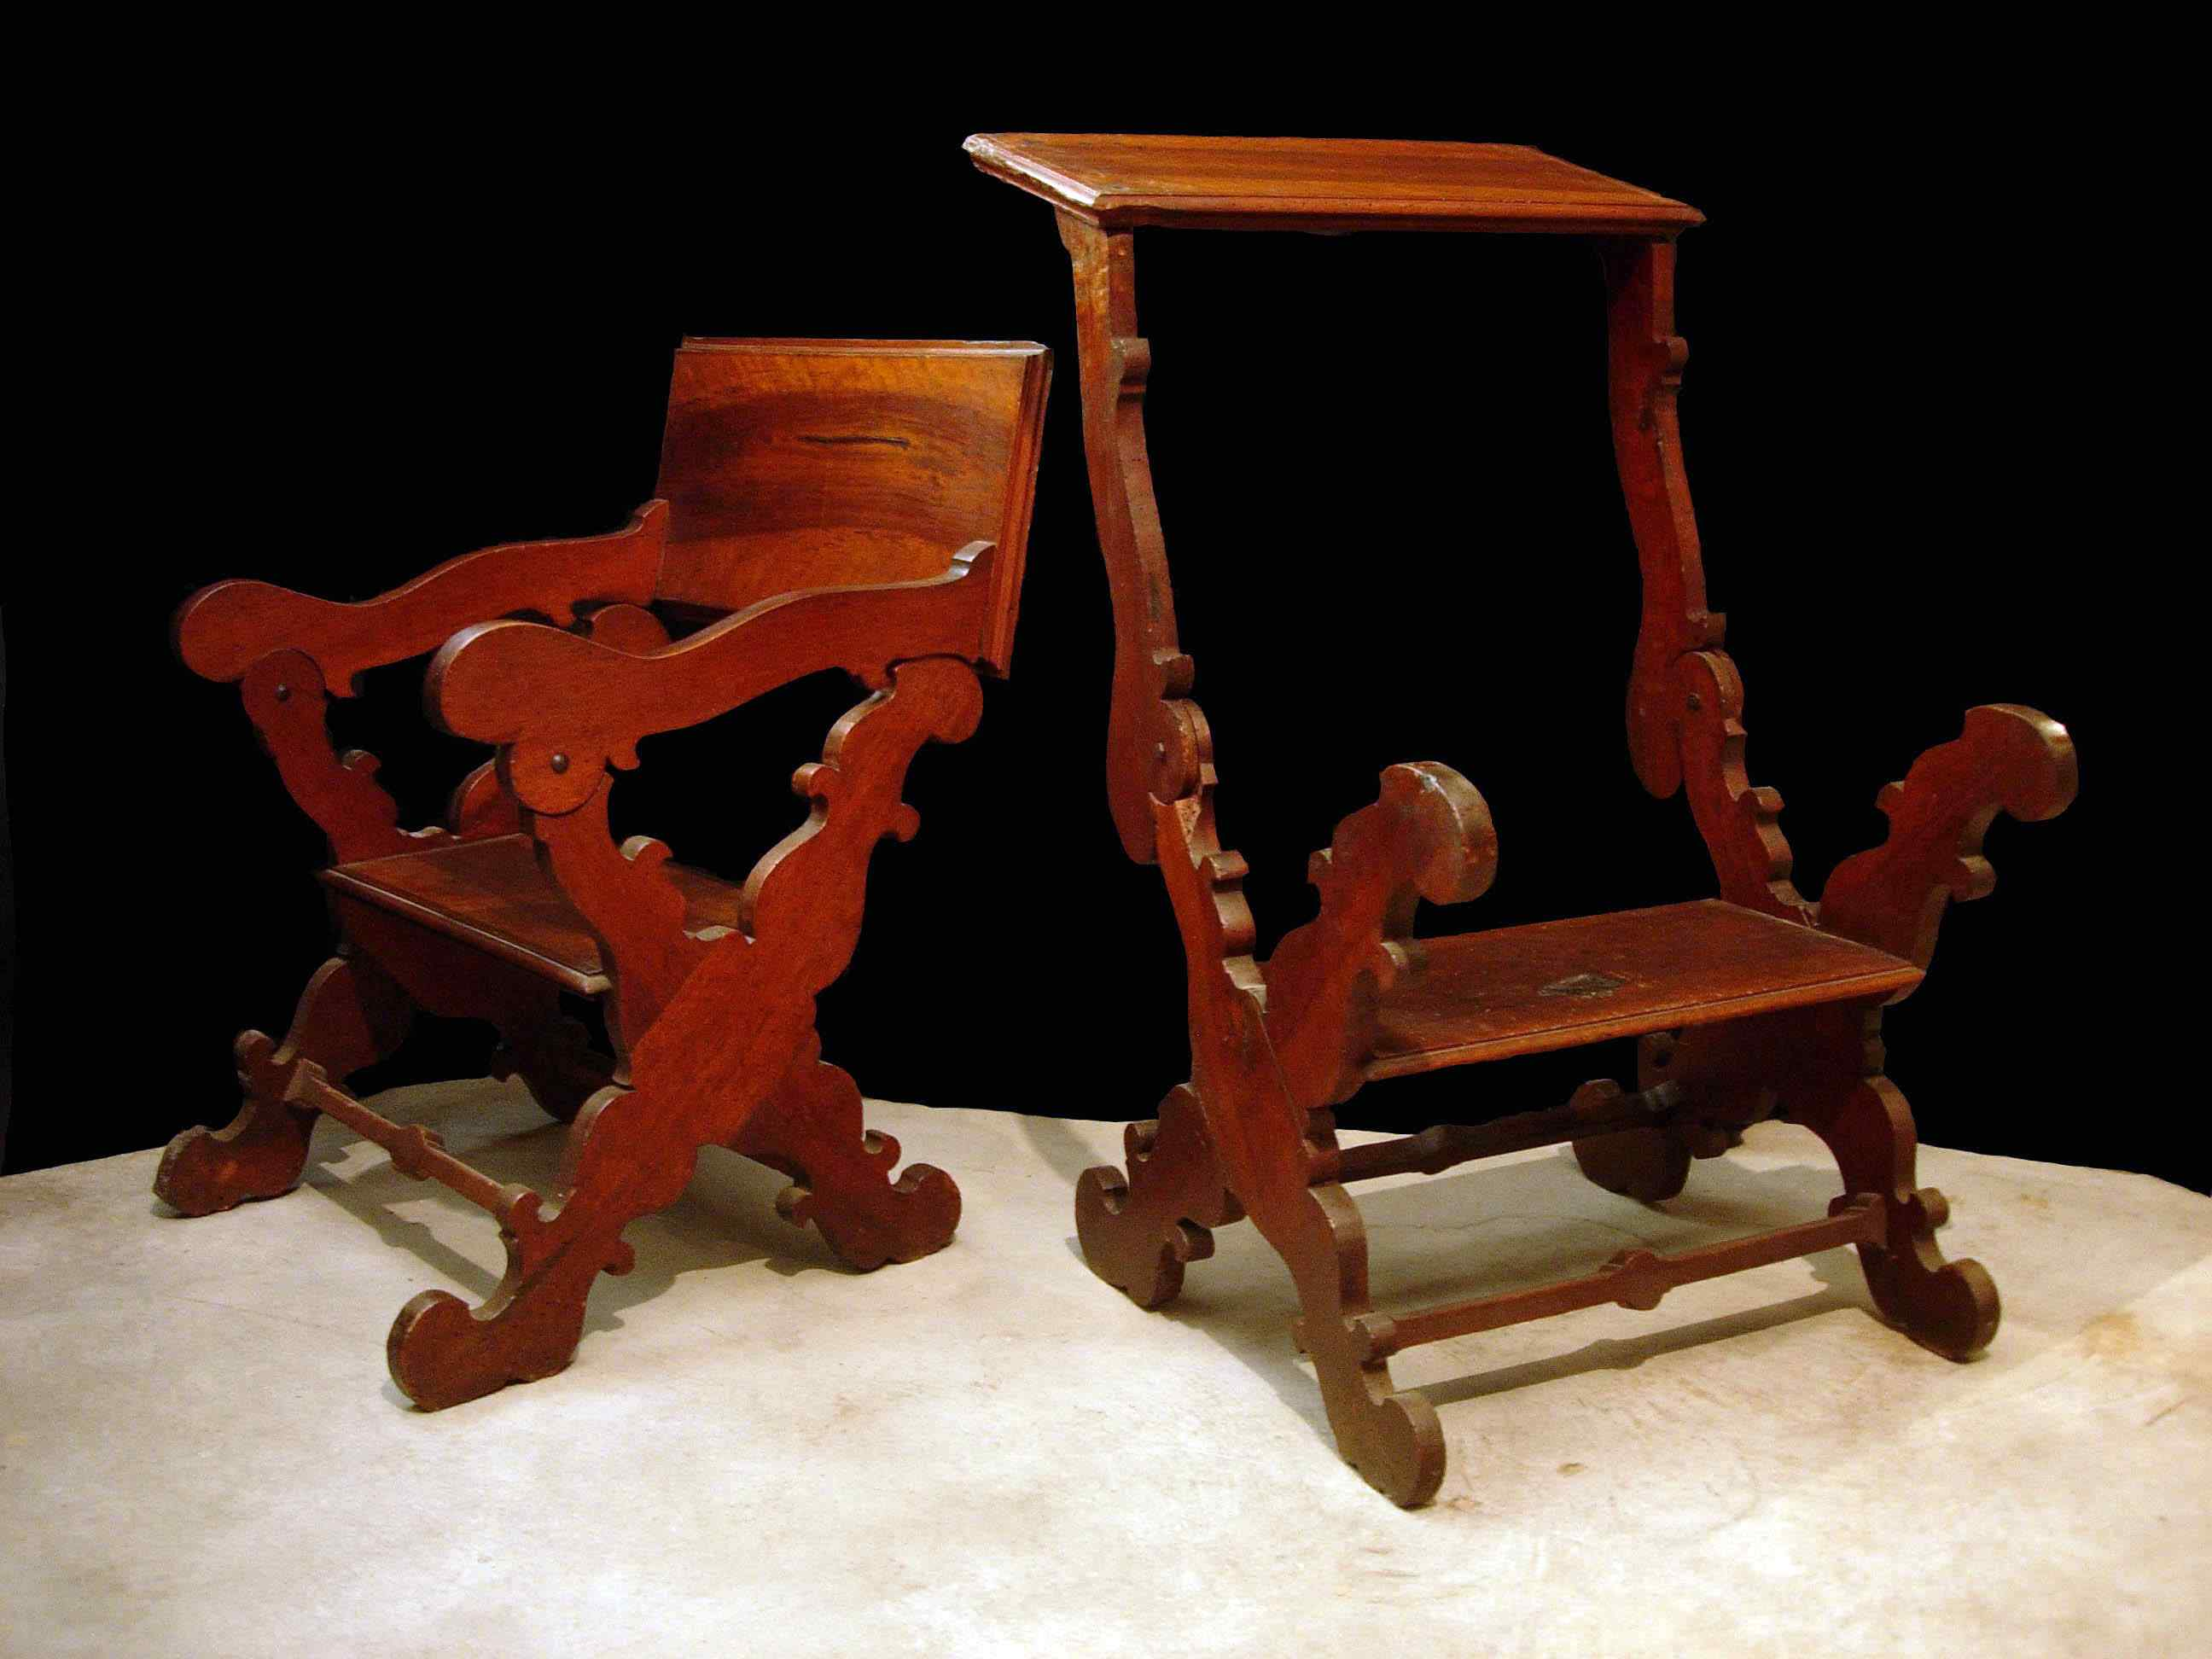 Pair of scissor armchairs, Tuscany, 17th century